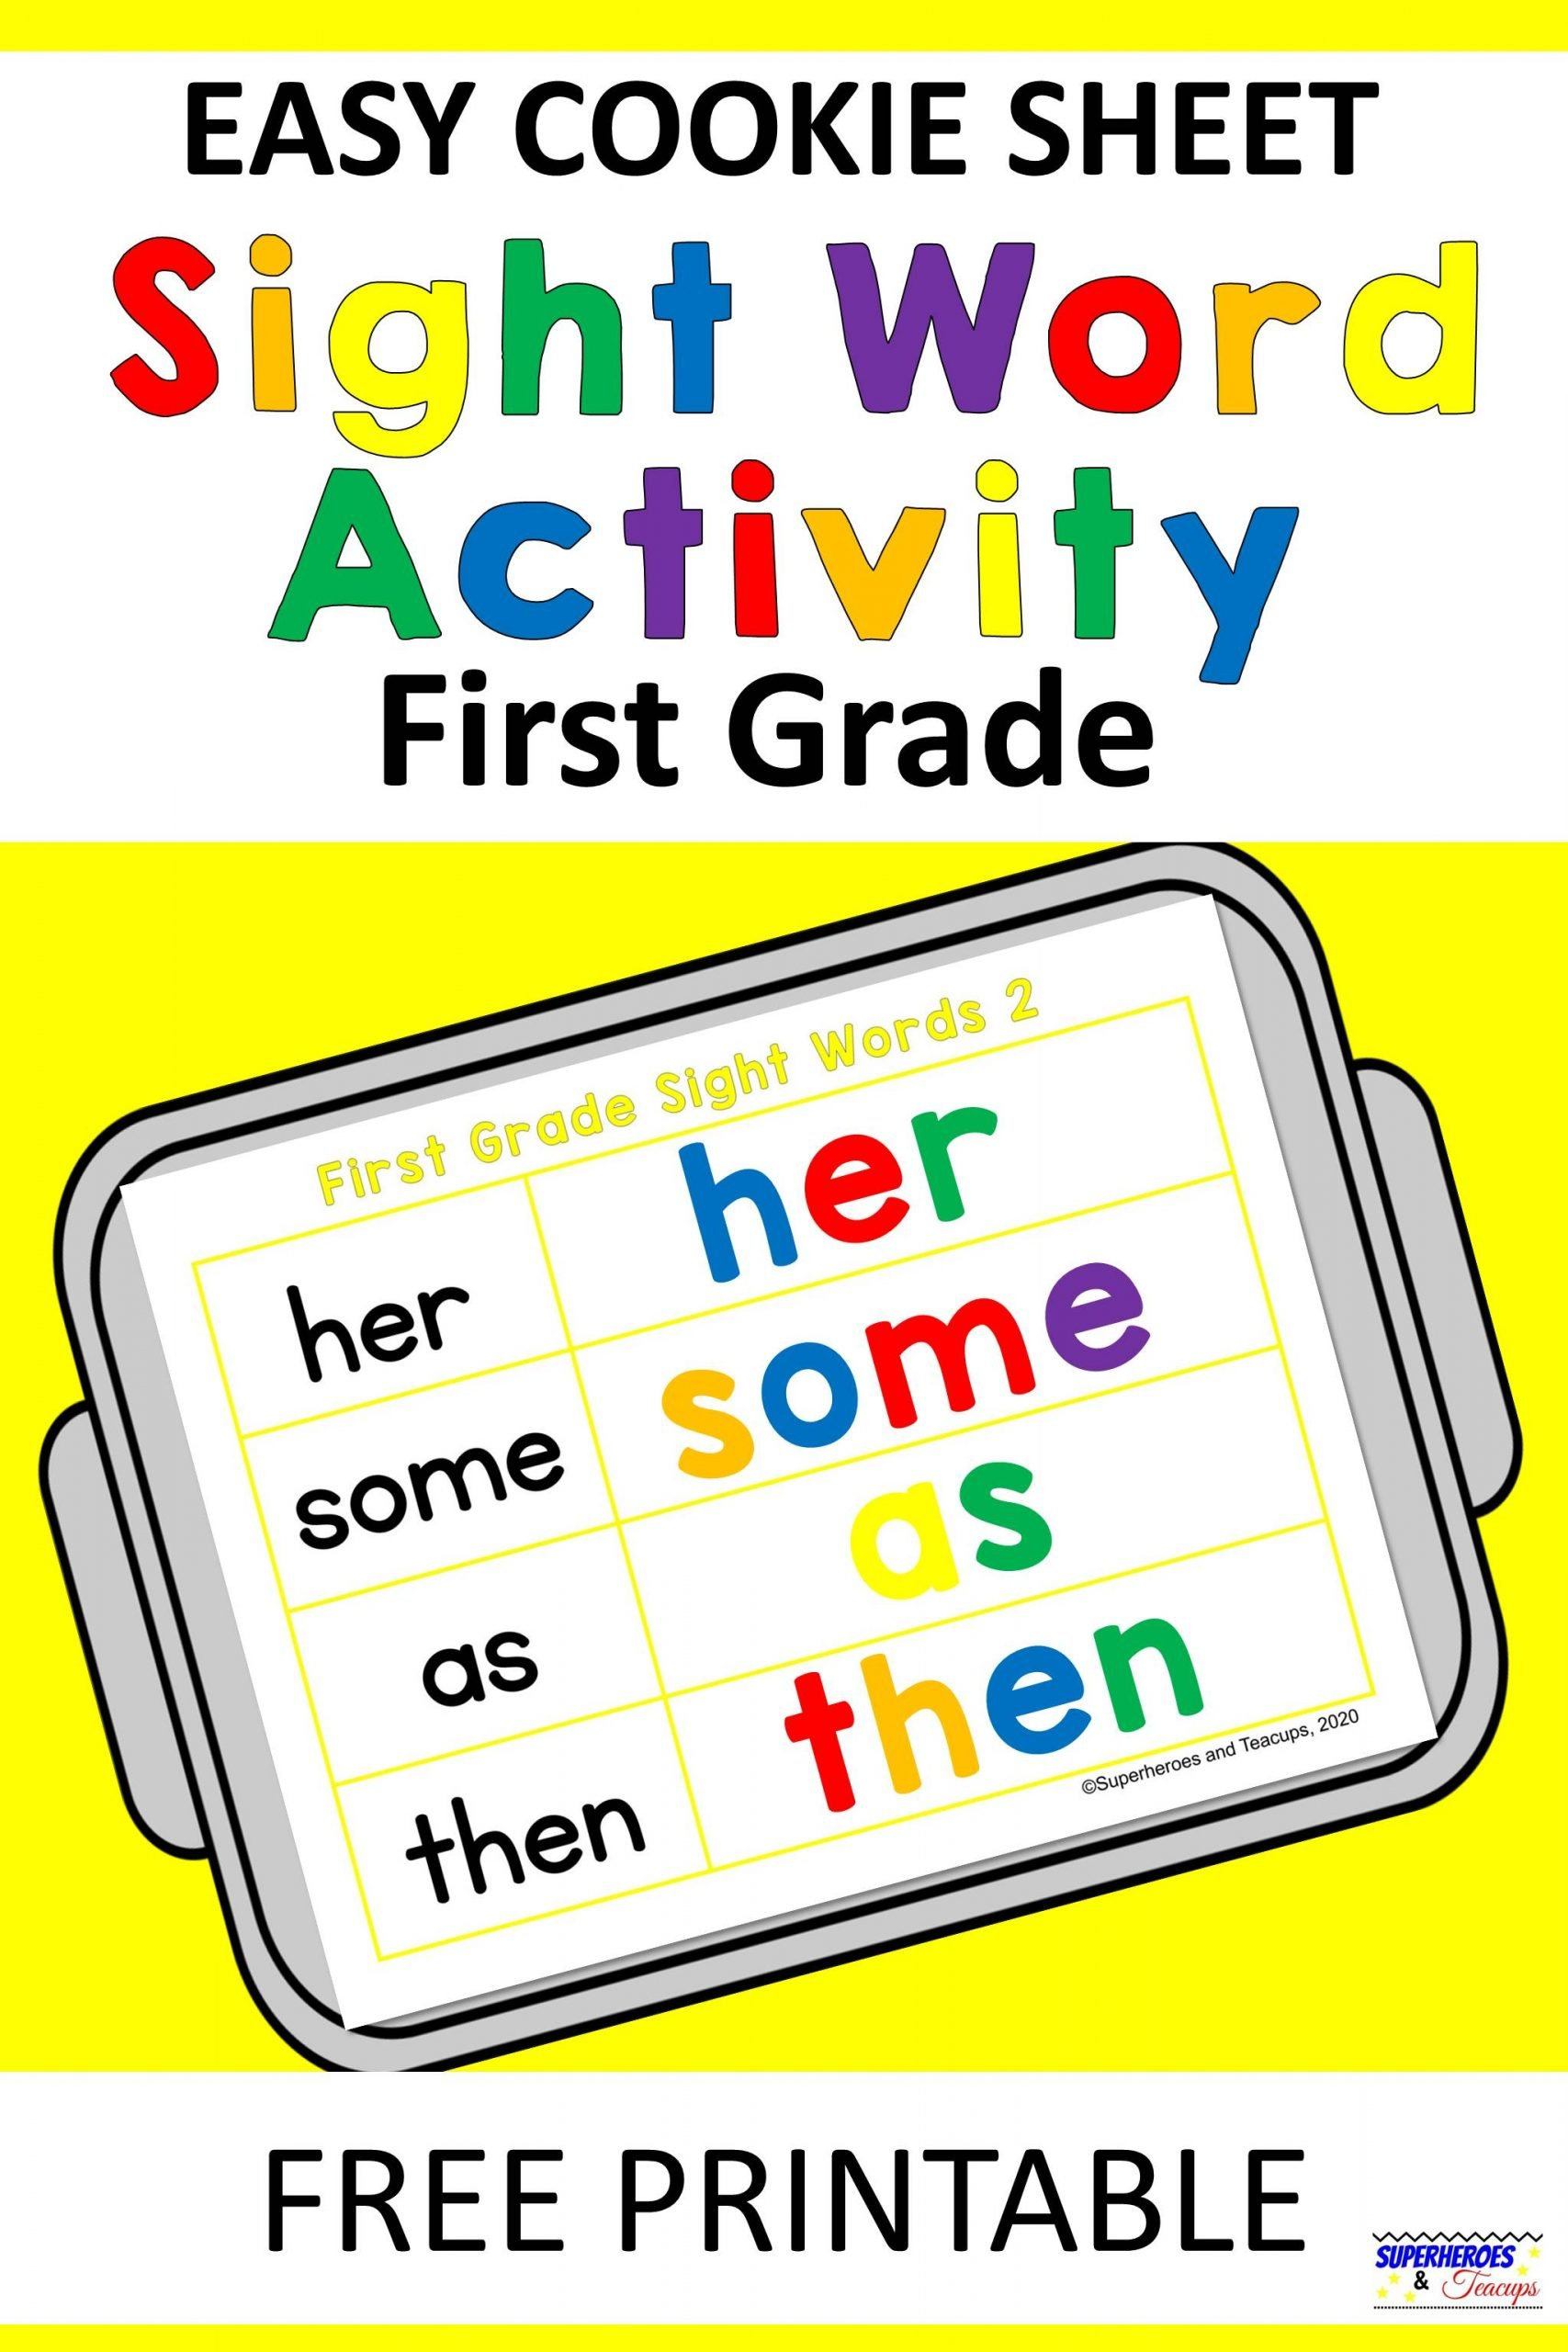 Easy Cookie Sheet First Grade Sight Word Activity